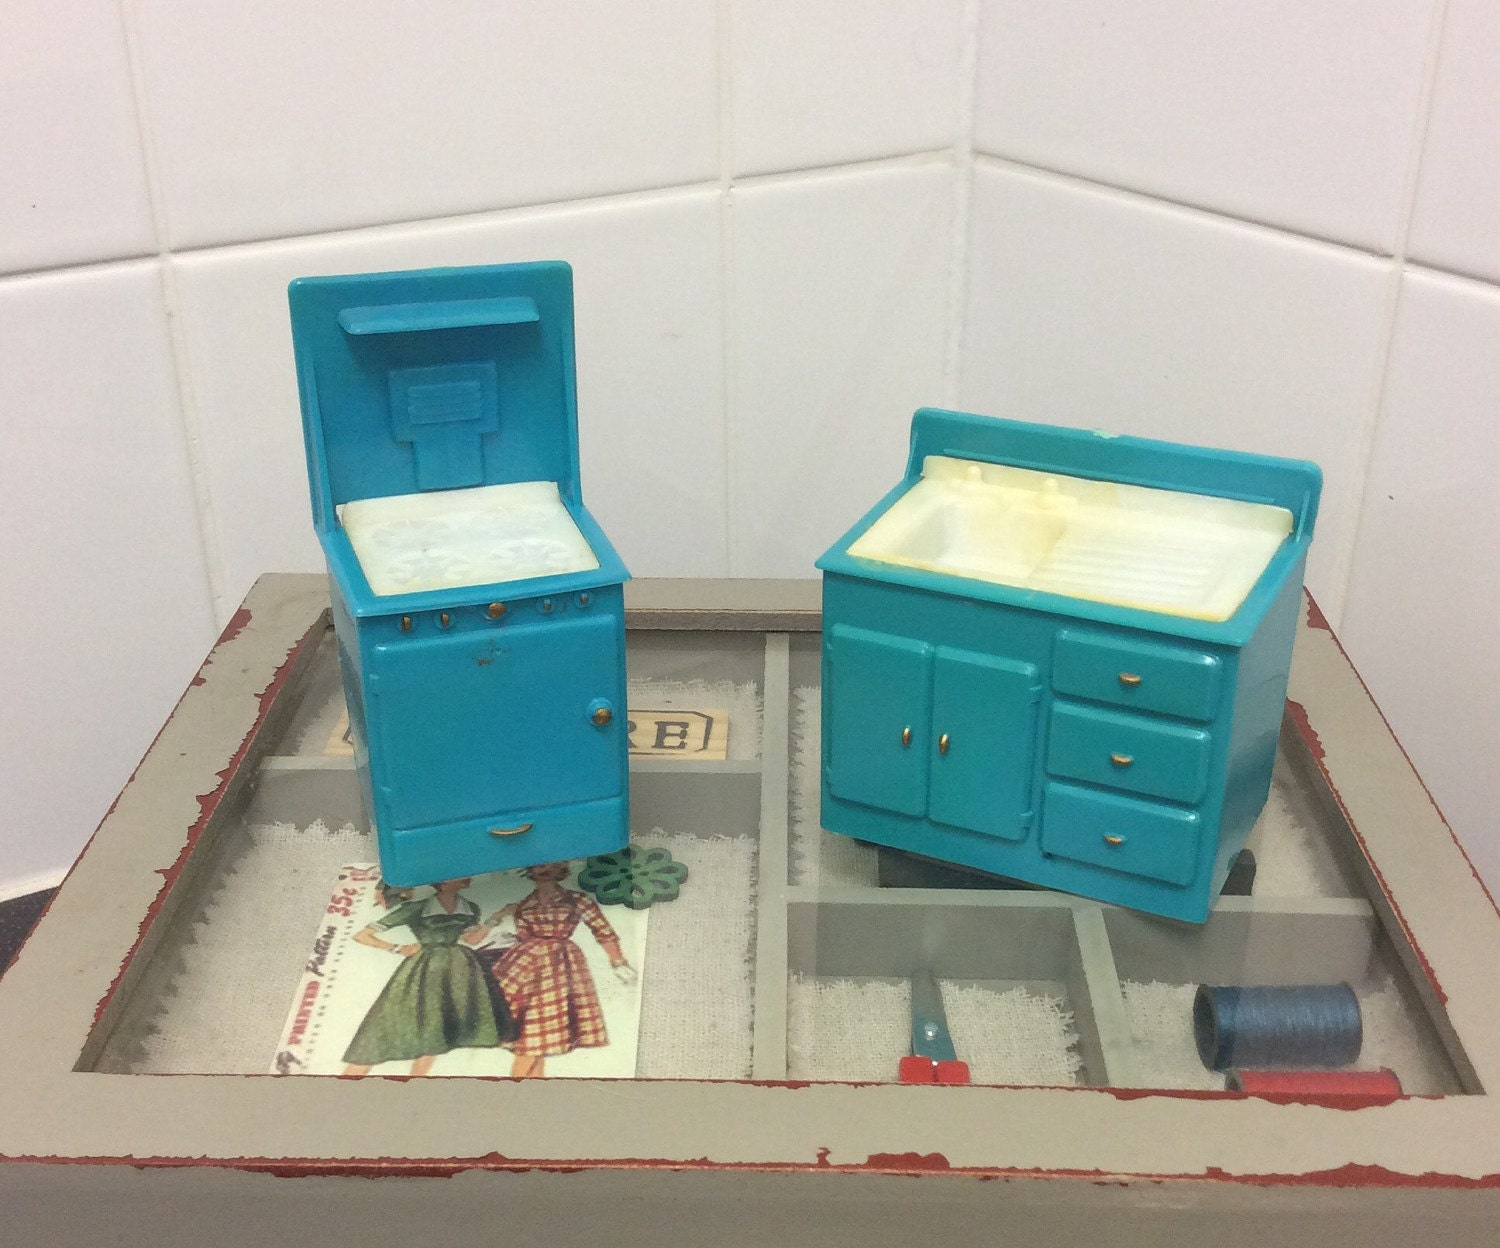 Vintage 1950s dolls house kitchen blue and white plastic cooker and sink unit midcentury modern miniature kitchen hob oven washing sink